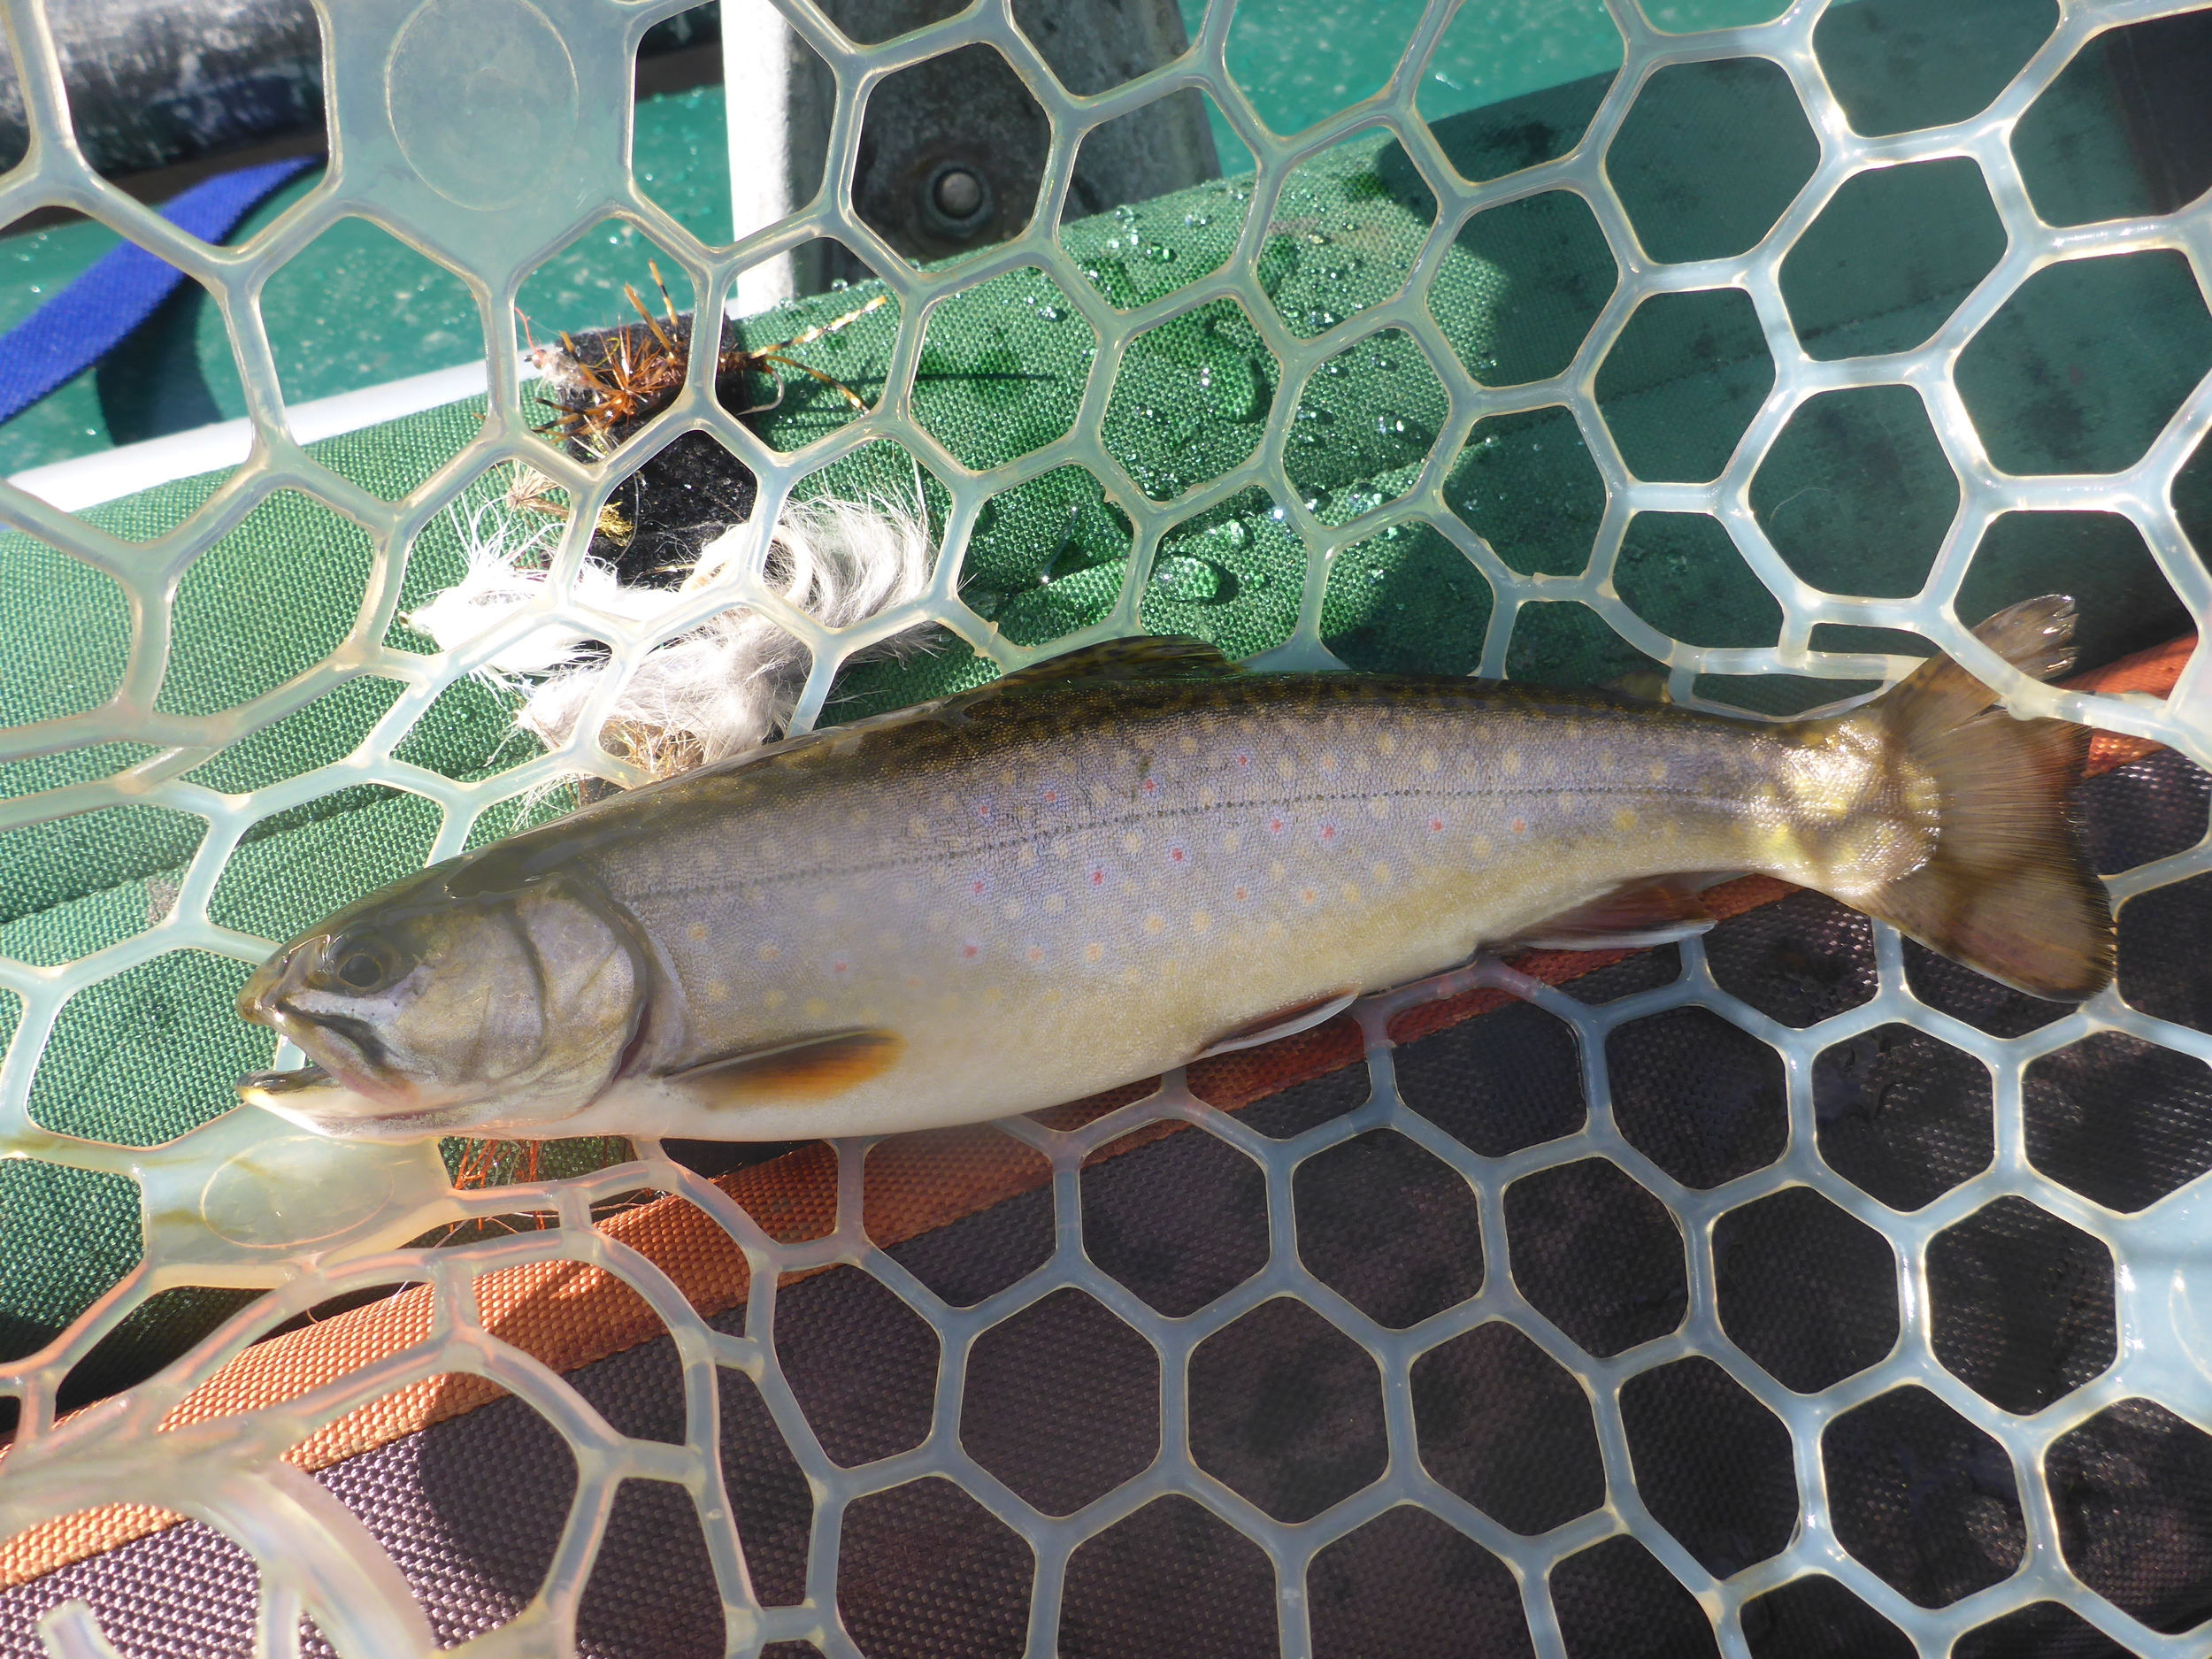 A rare wild brook trout from the Androscoggin